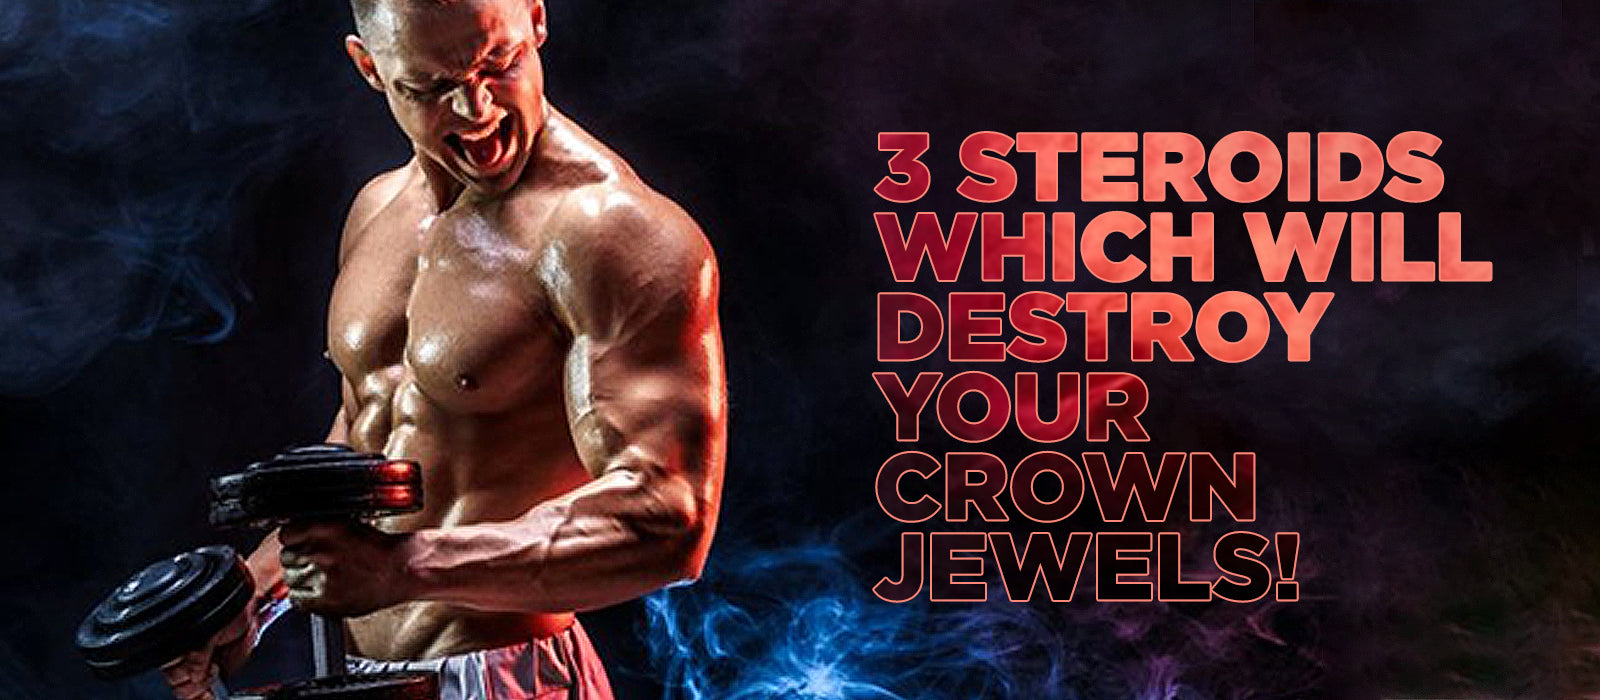 3 Steroids Which Will Destroy Your Crown Jewels!